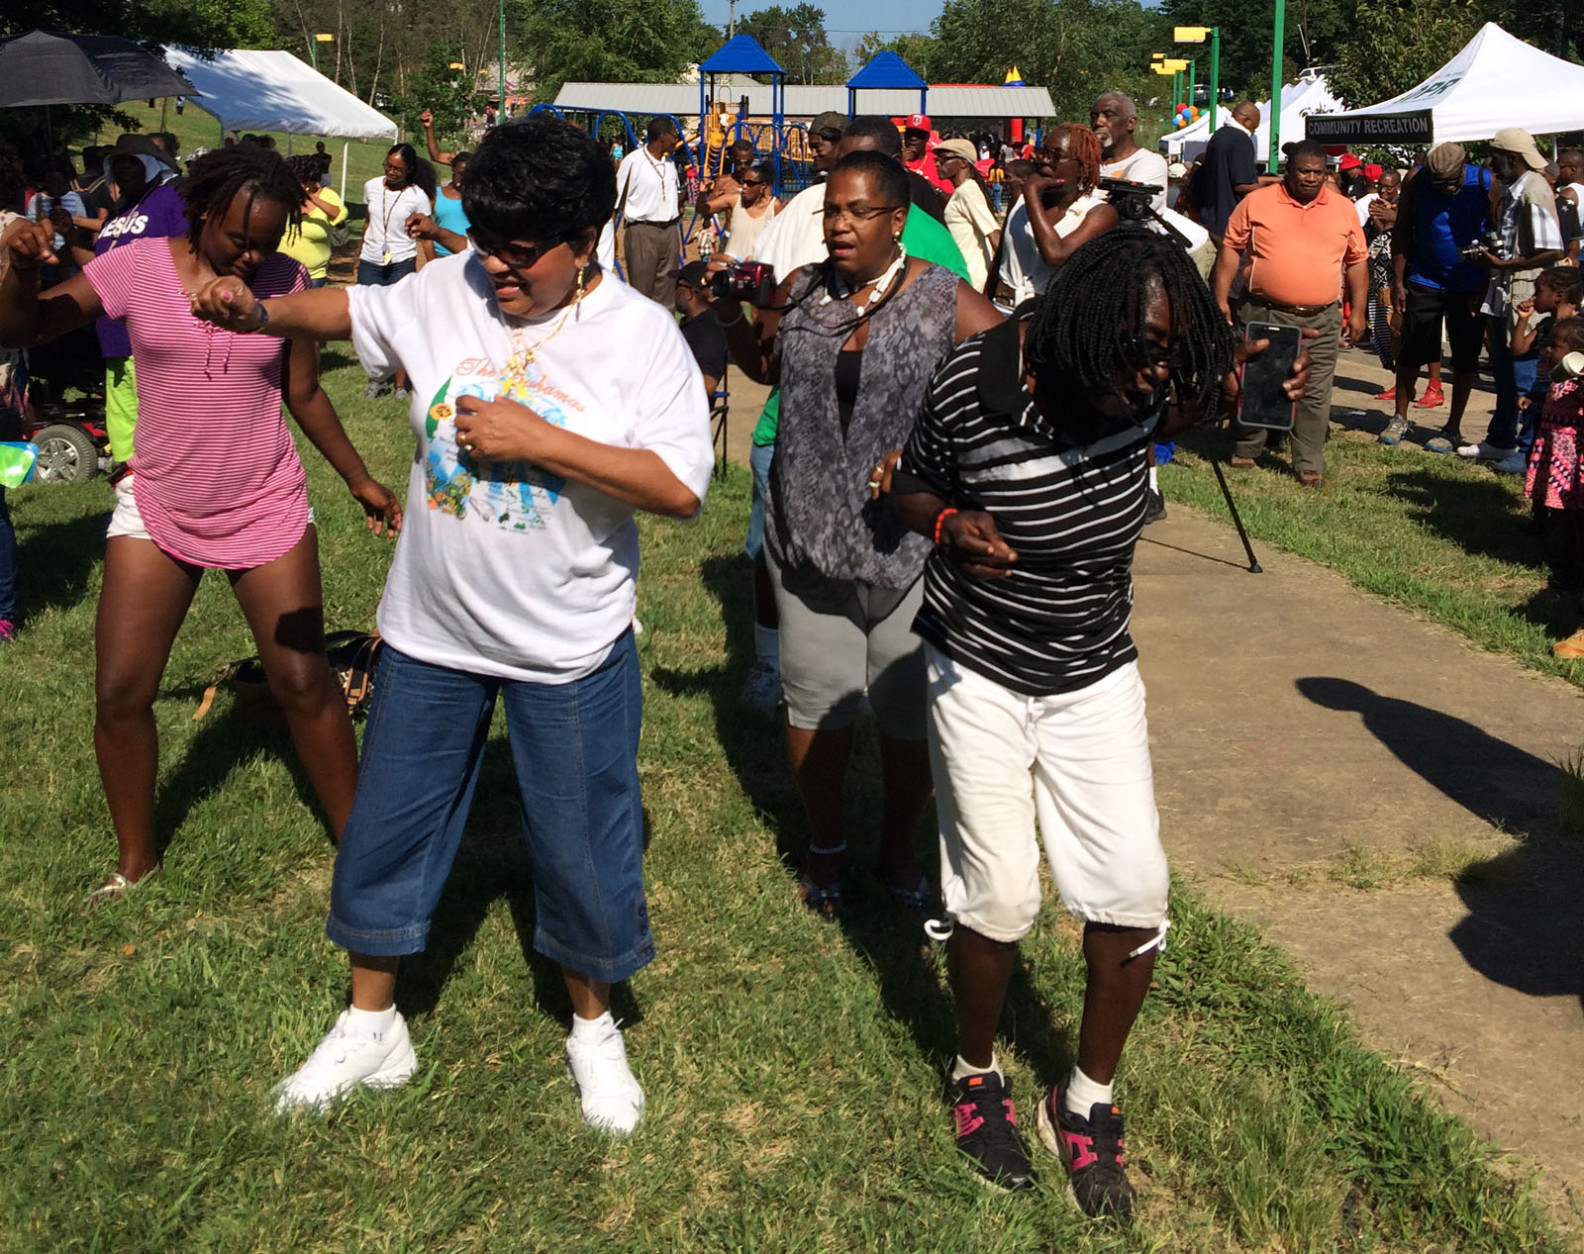 Hundreds of people moved and grooved to the music of the Chuck Brown Band, Plunky and the Oneness, and Secret Society on stage at Chuck Brown Memorial Park (2901 20th St. NE). (WTOP/Dick Uliano)